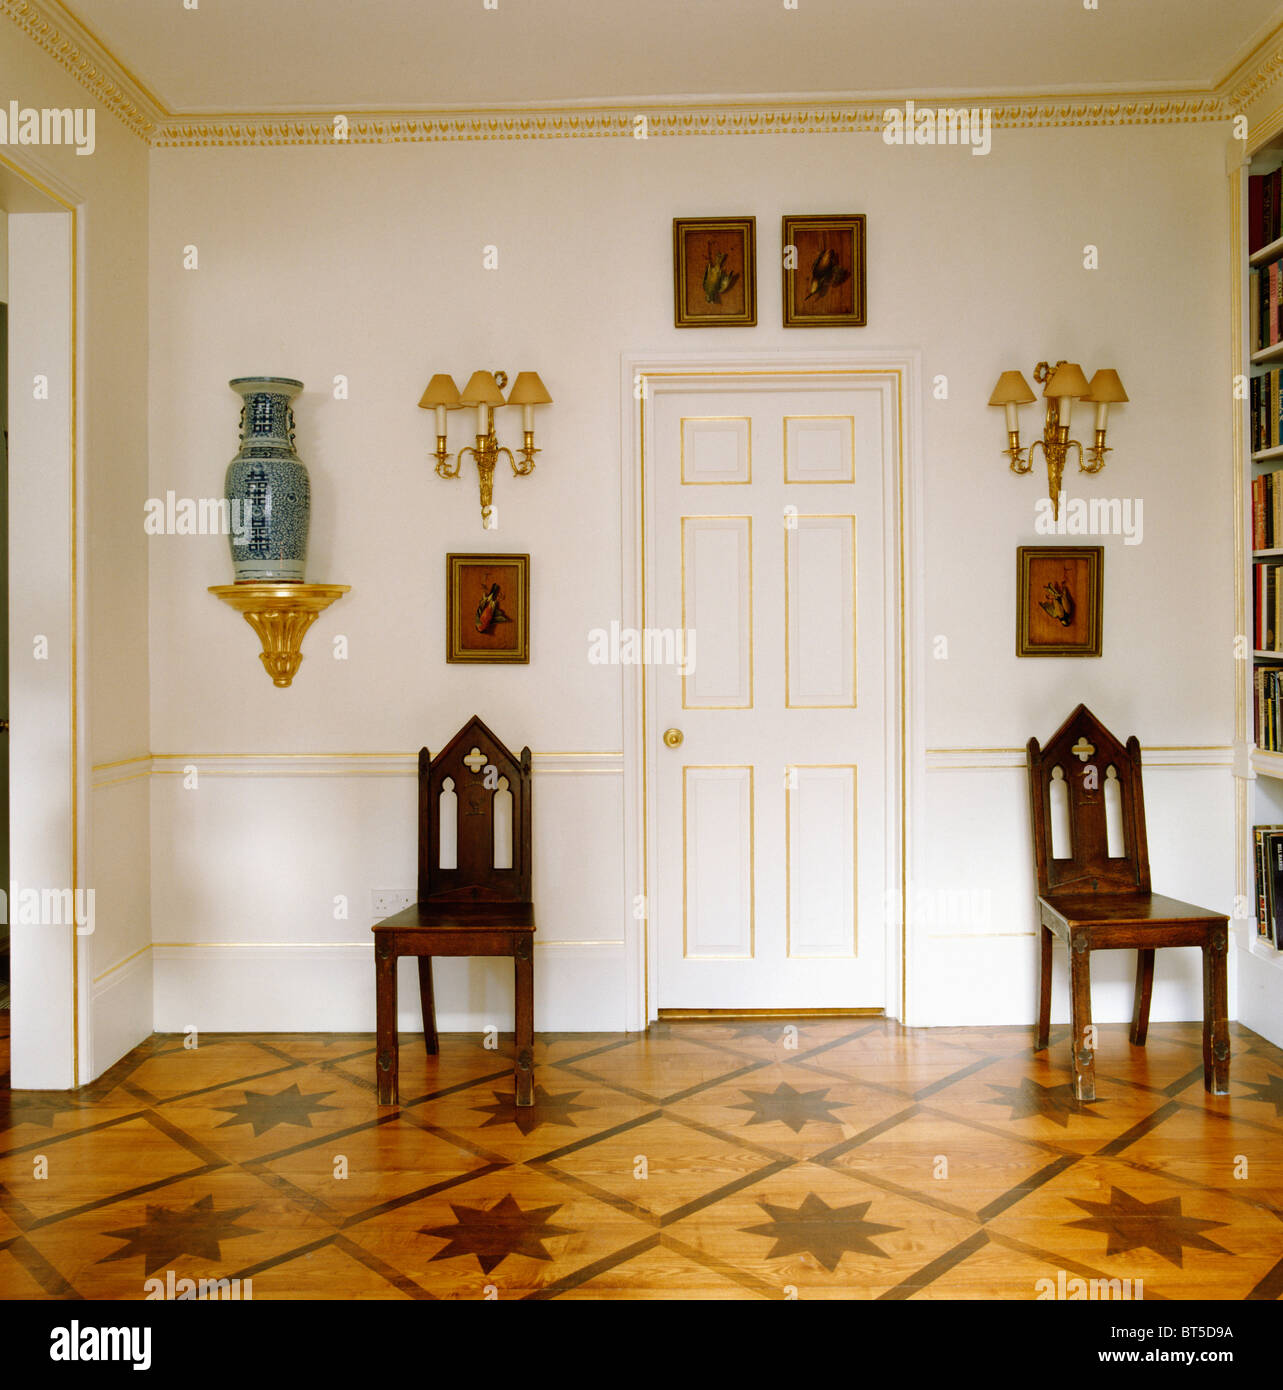 Antique Wooden Gothic Style Chair In Traditional Hall With Dado Rail And  Stenciled And Polished